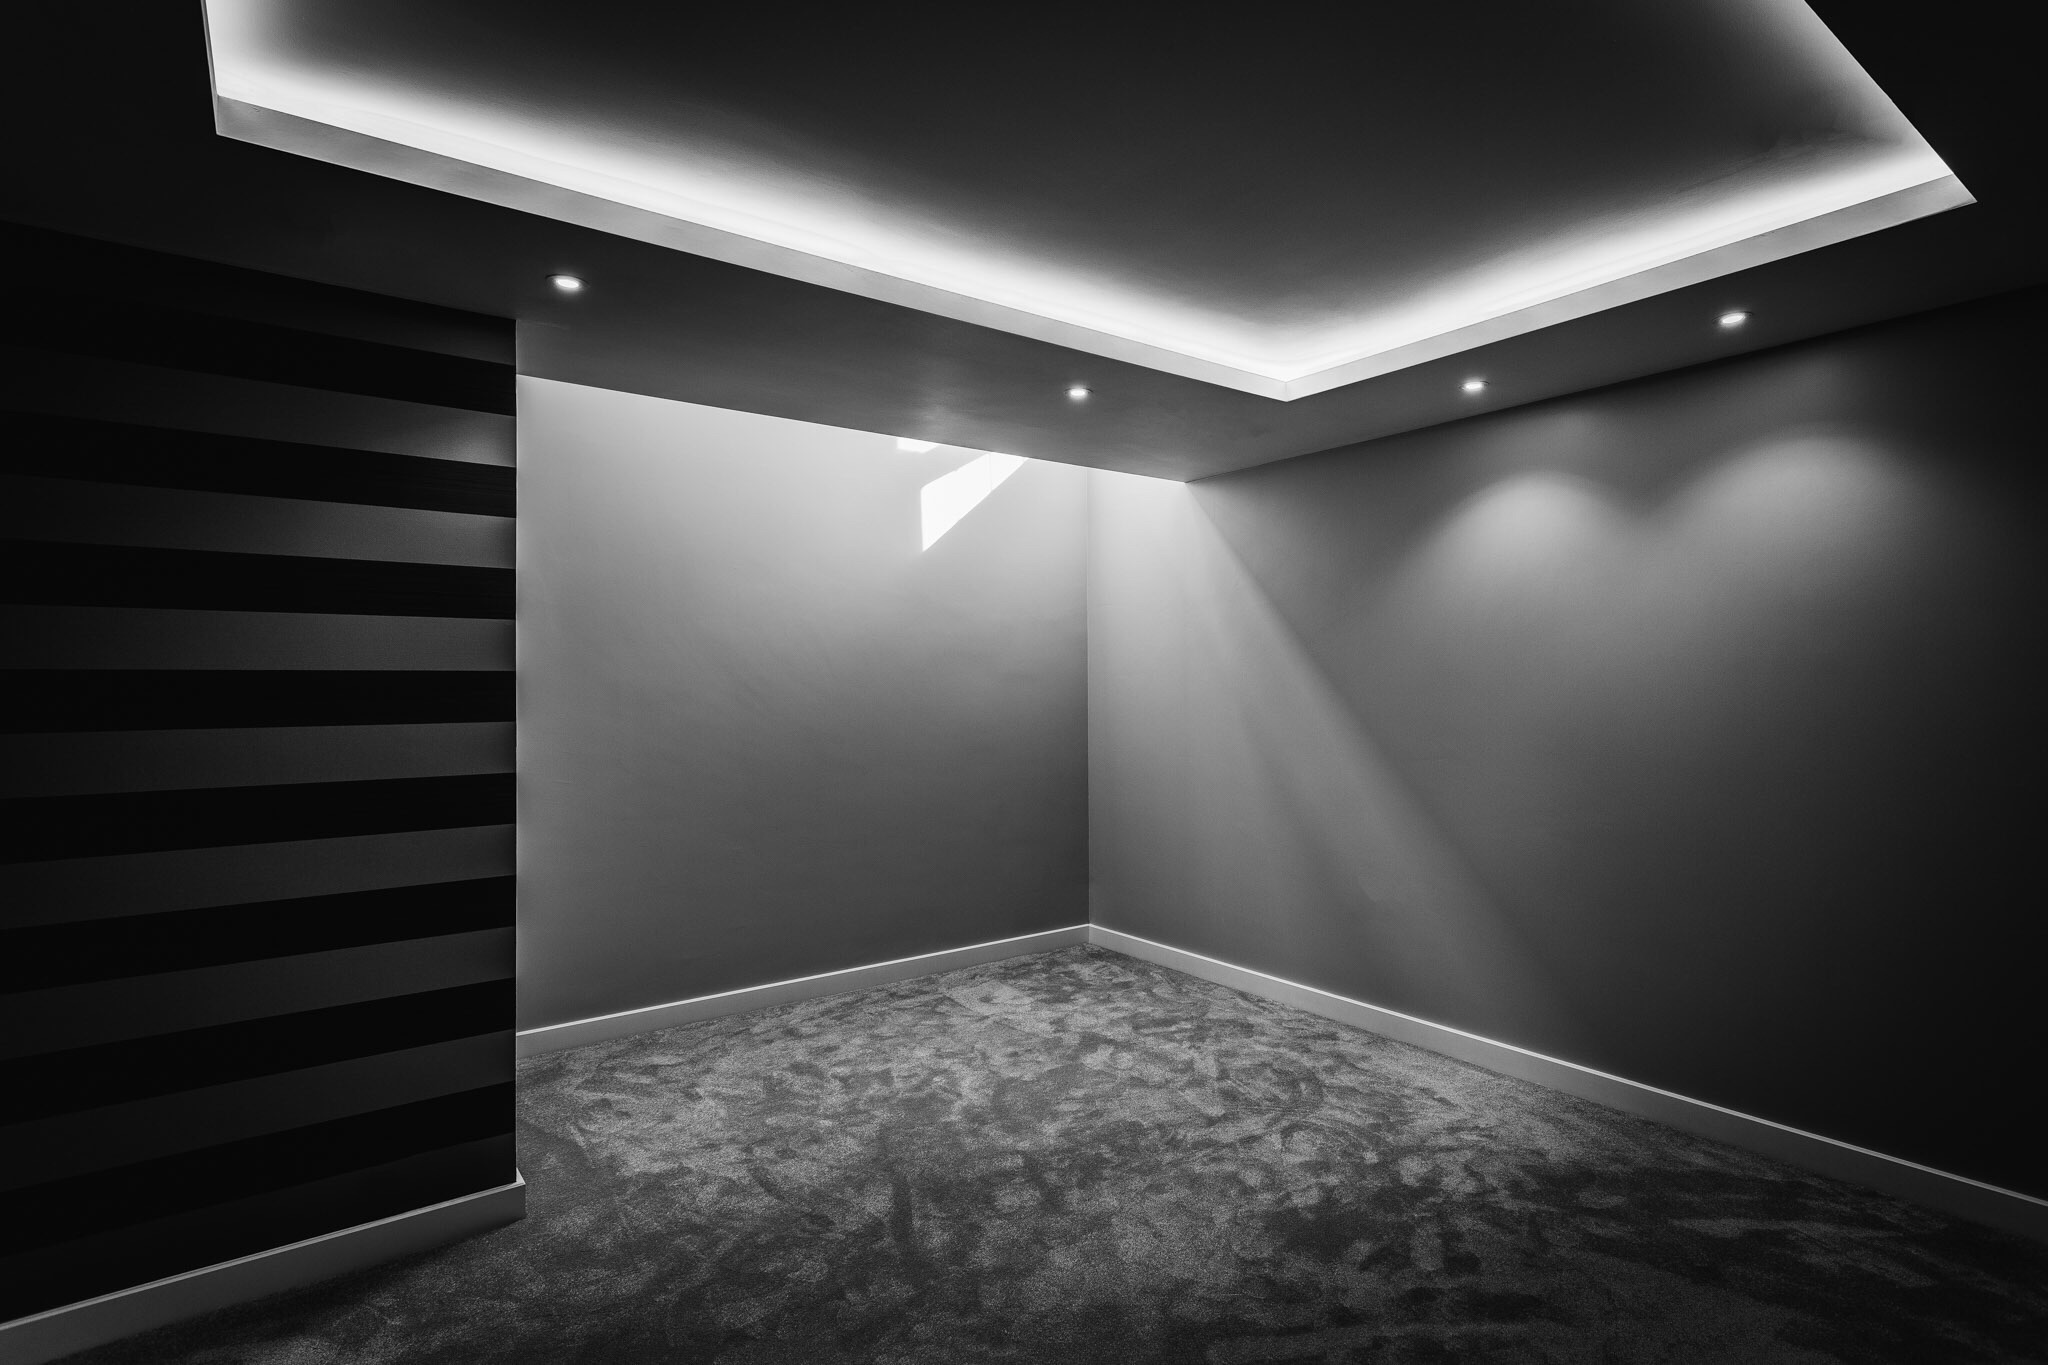 Black and white interior photography